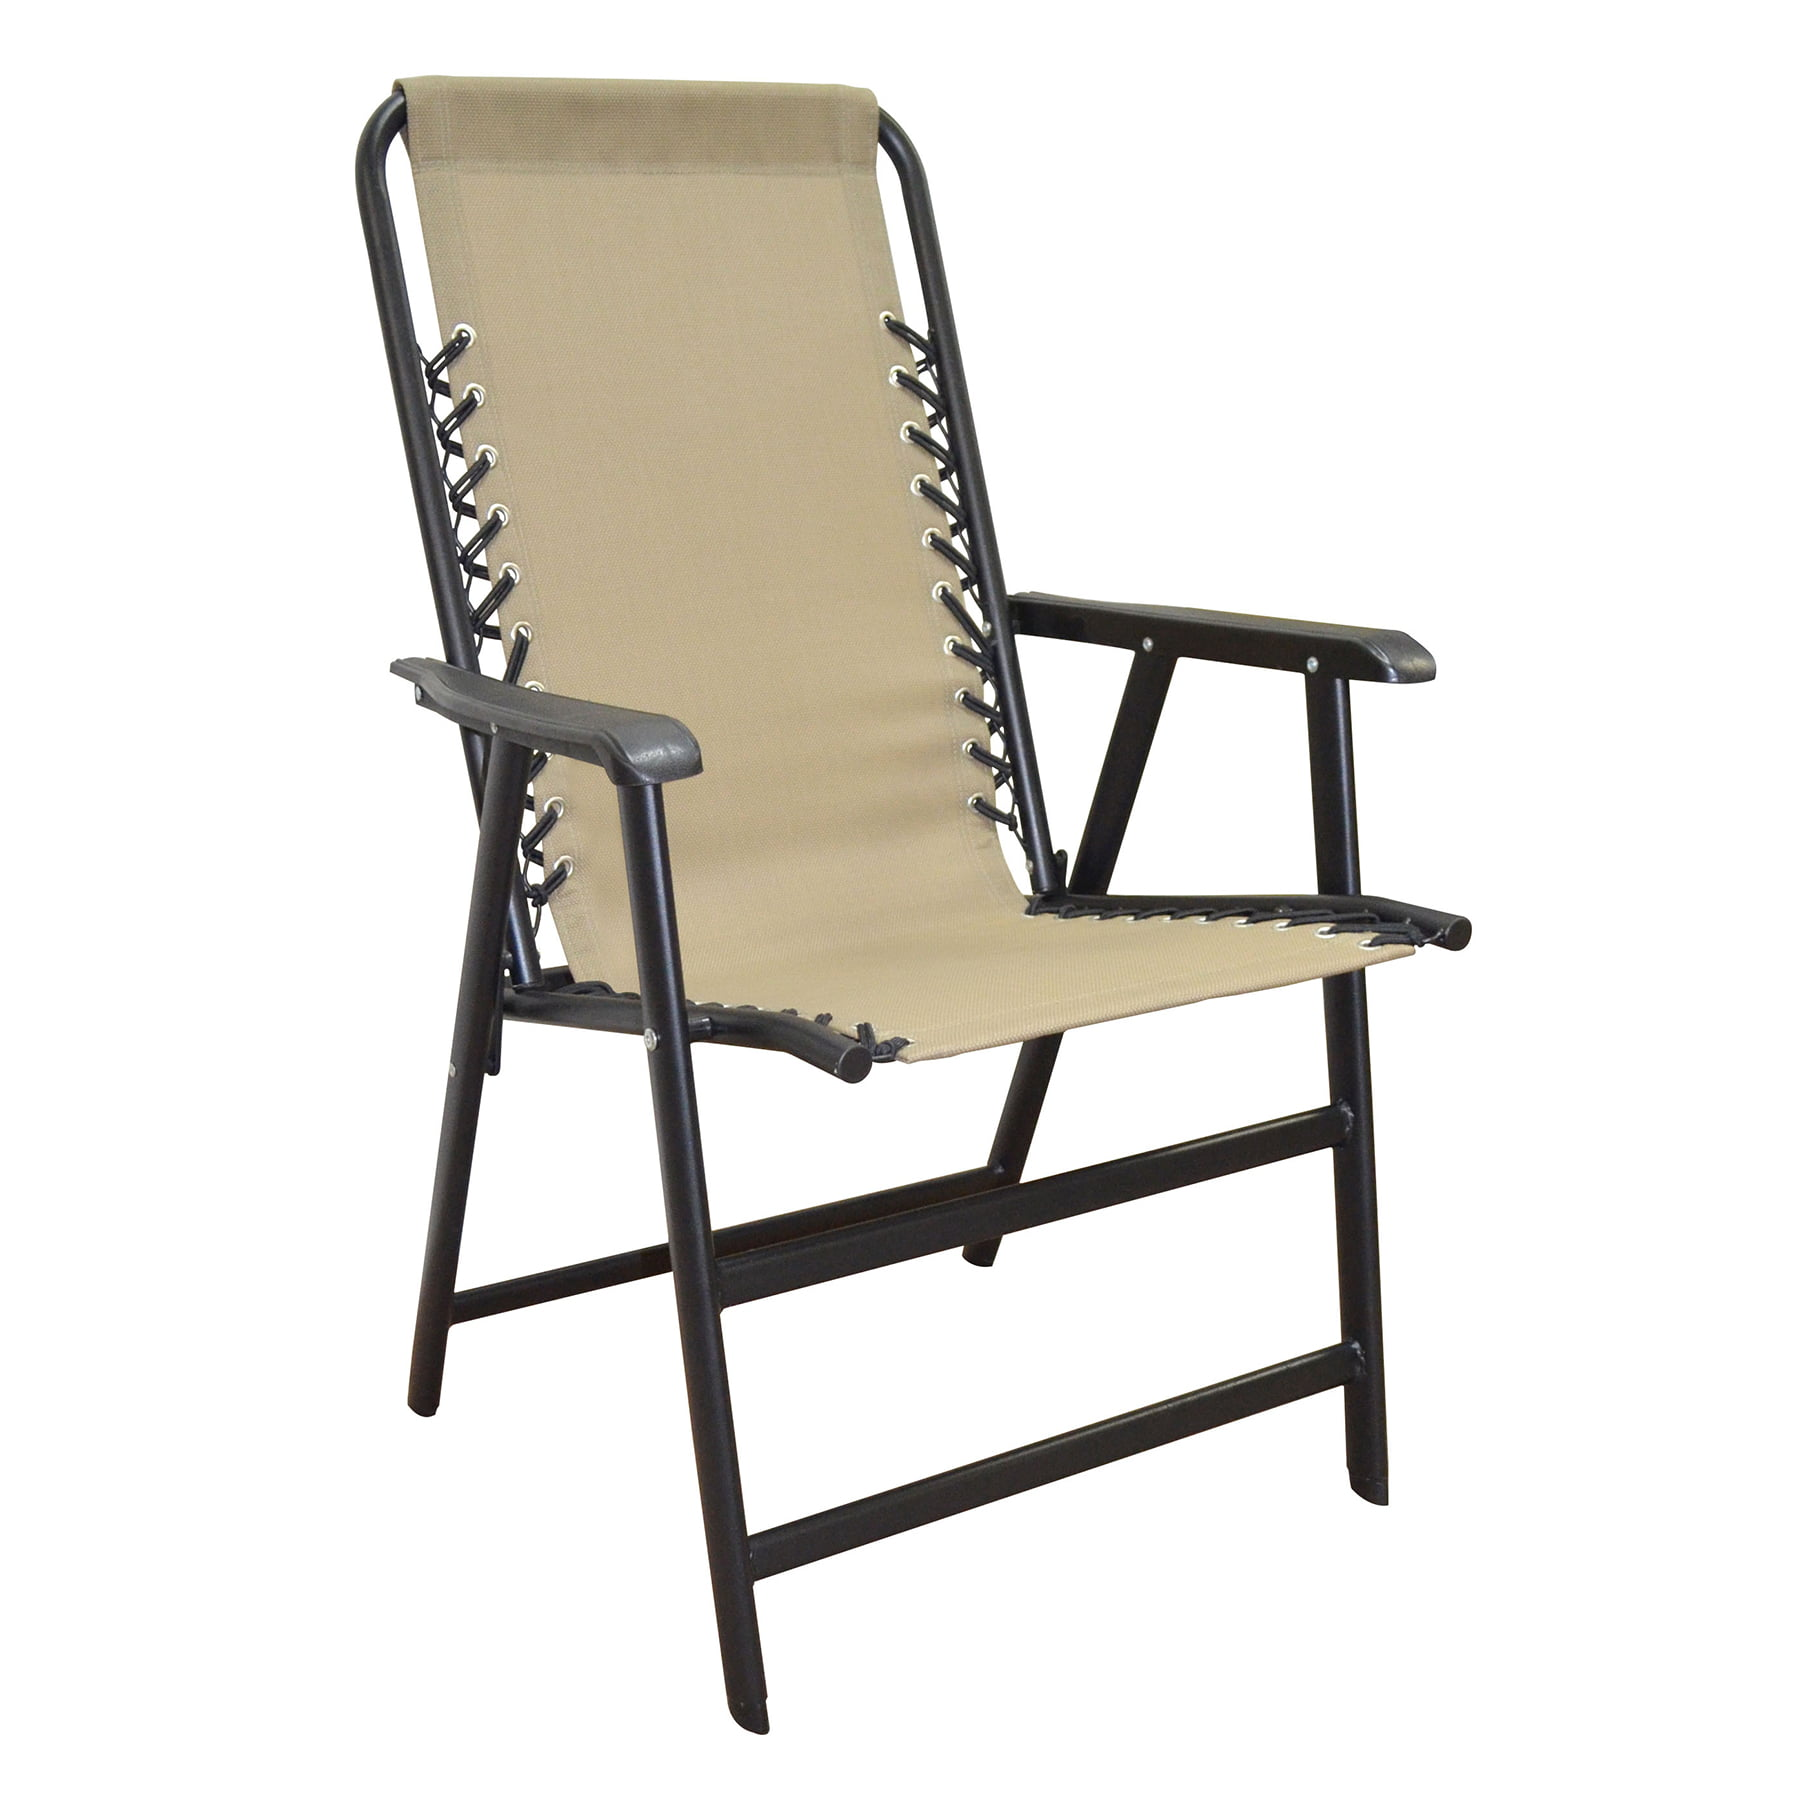 Incredible Caravan Global Sports Suspension Beige Folding Chair Walmart Com Ocoug Best Dining Table And Chair Ideas Images Ocougorg